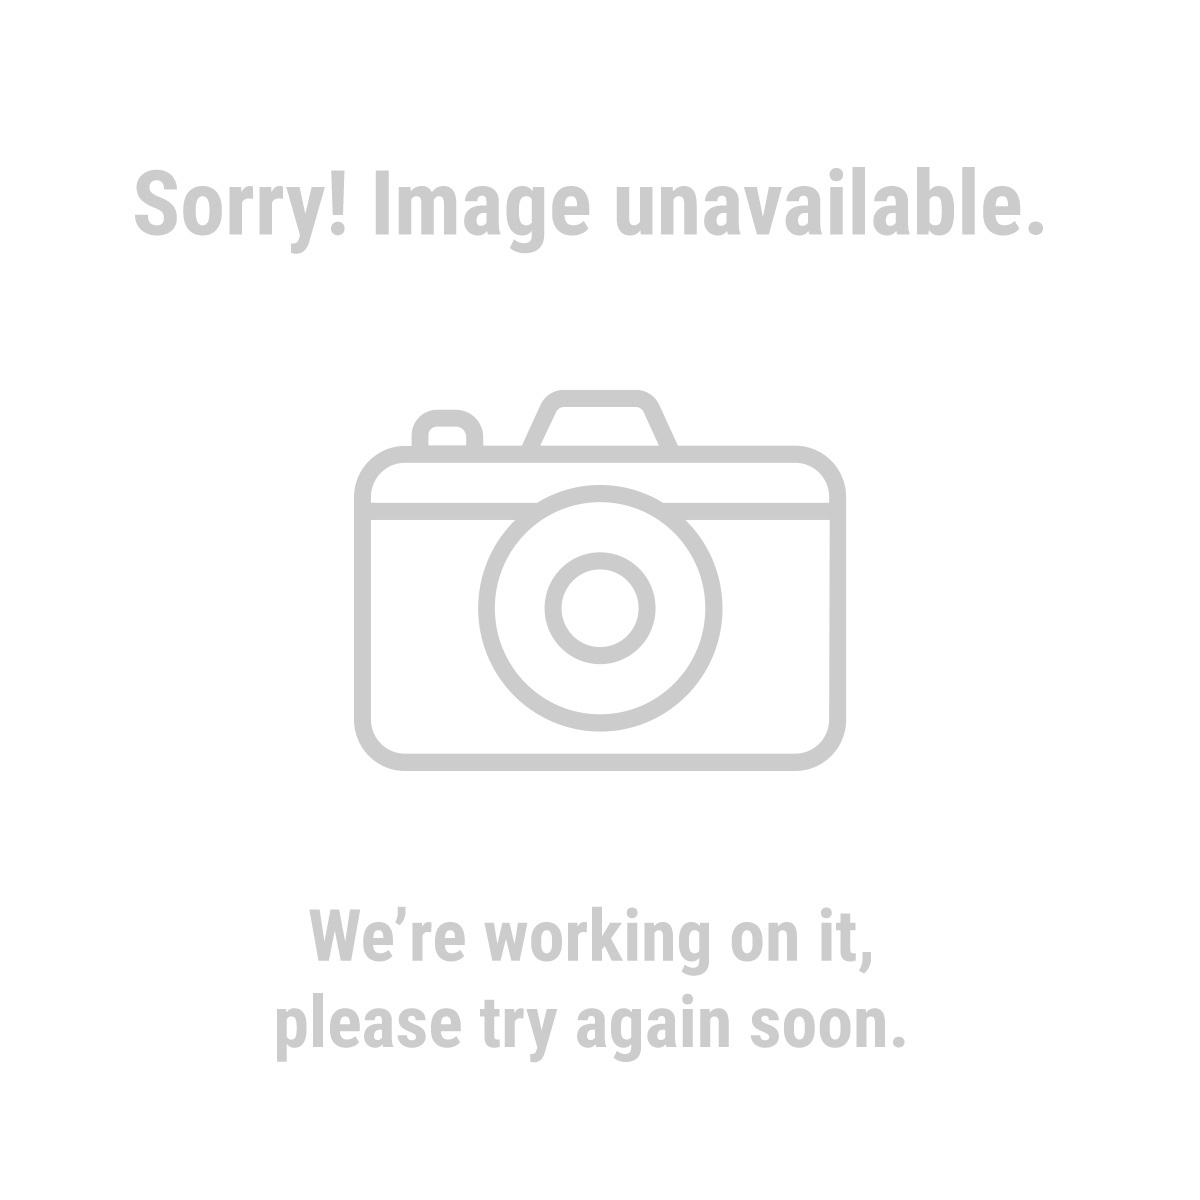 60651 1/2 Pound Rubber Bands